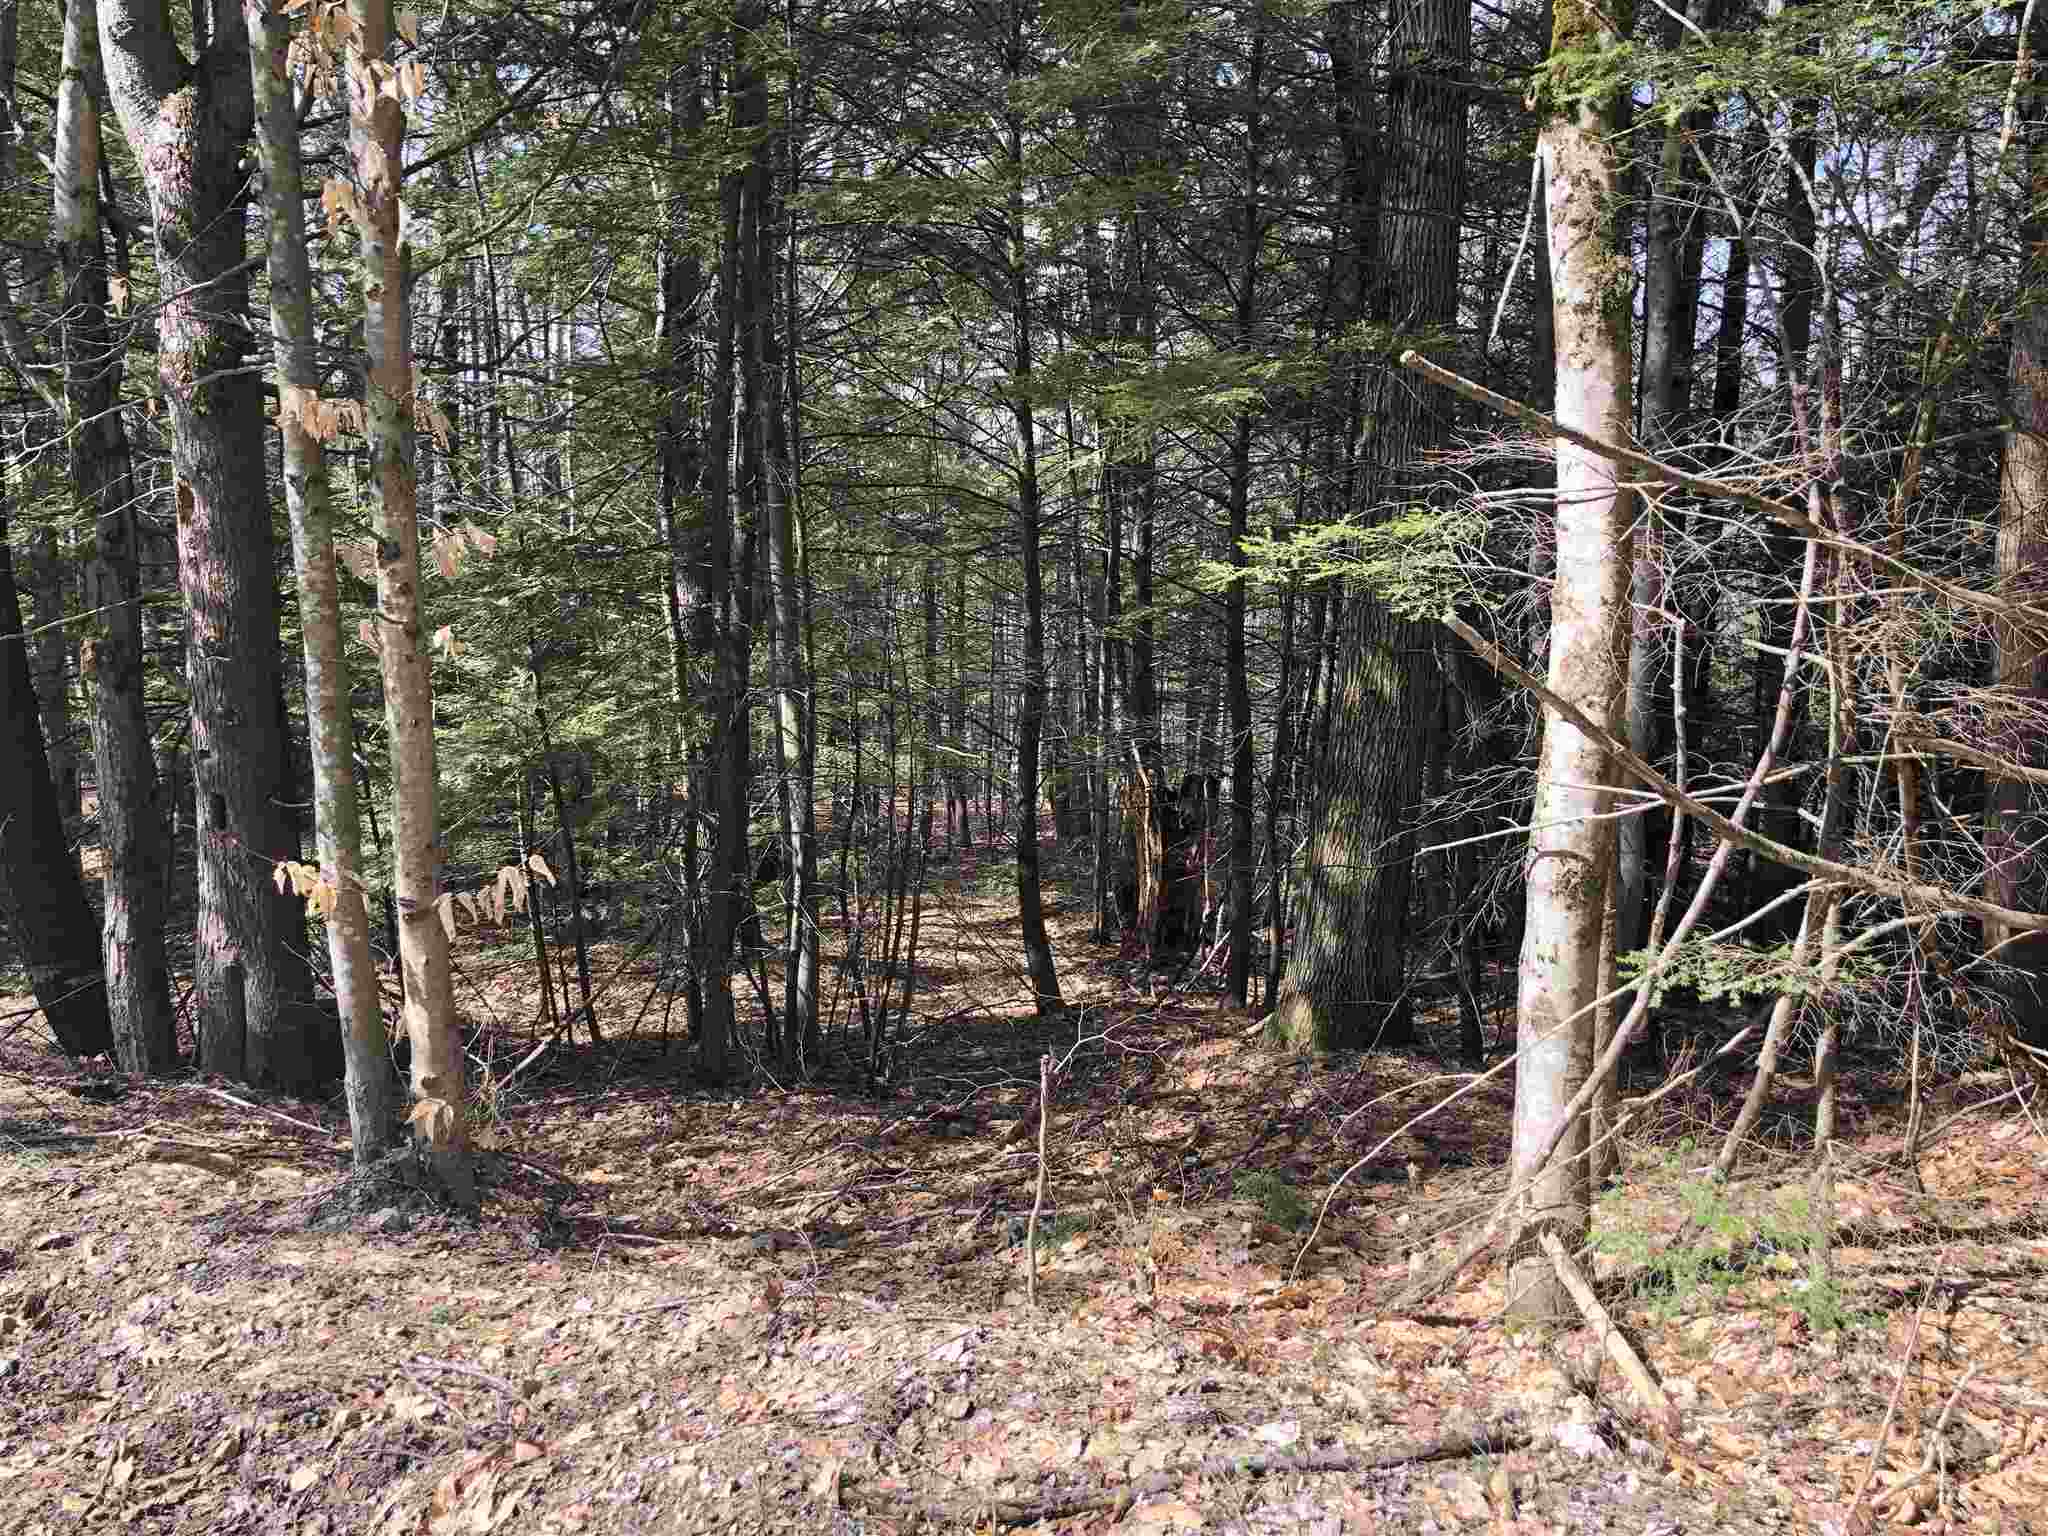 VILLAGE OF OSSIPEE VILLAGE NH IN TOWN OF OSSIPEE NHLand / Acres for sale